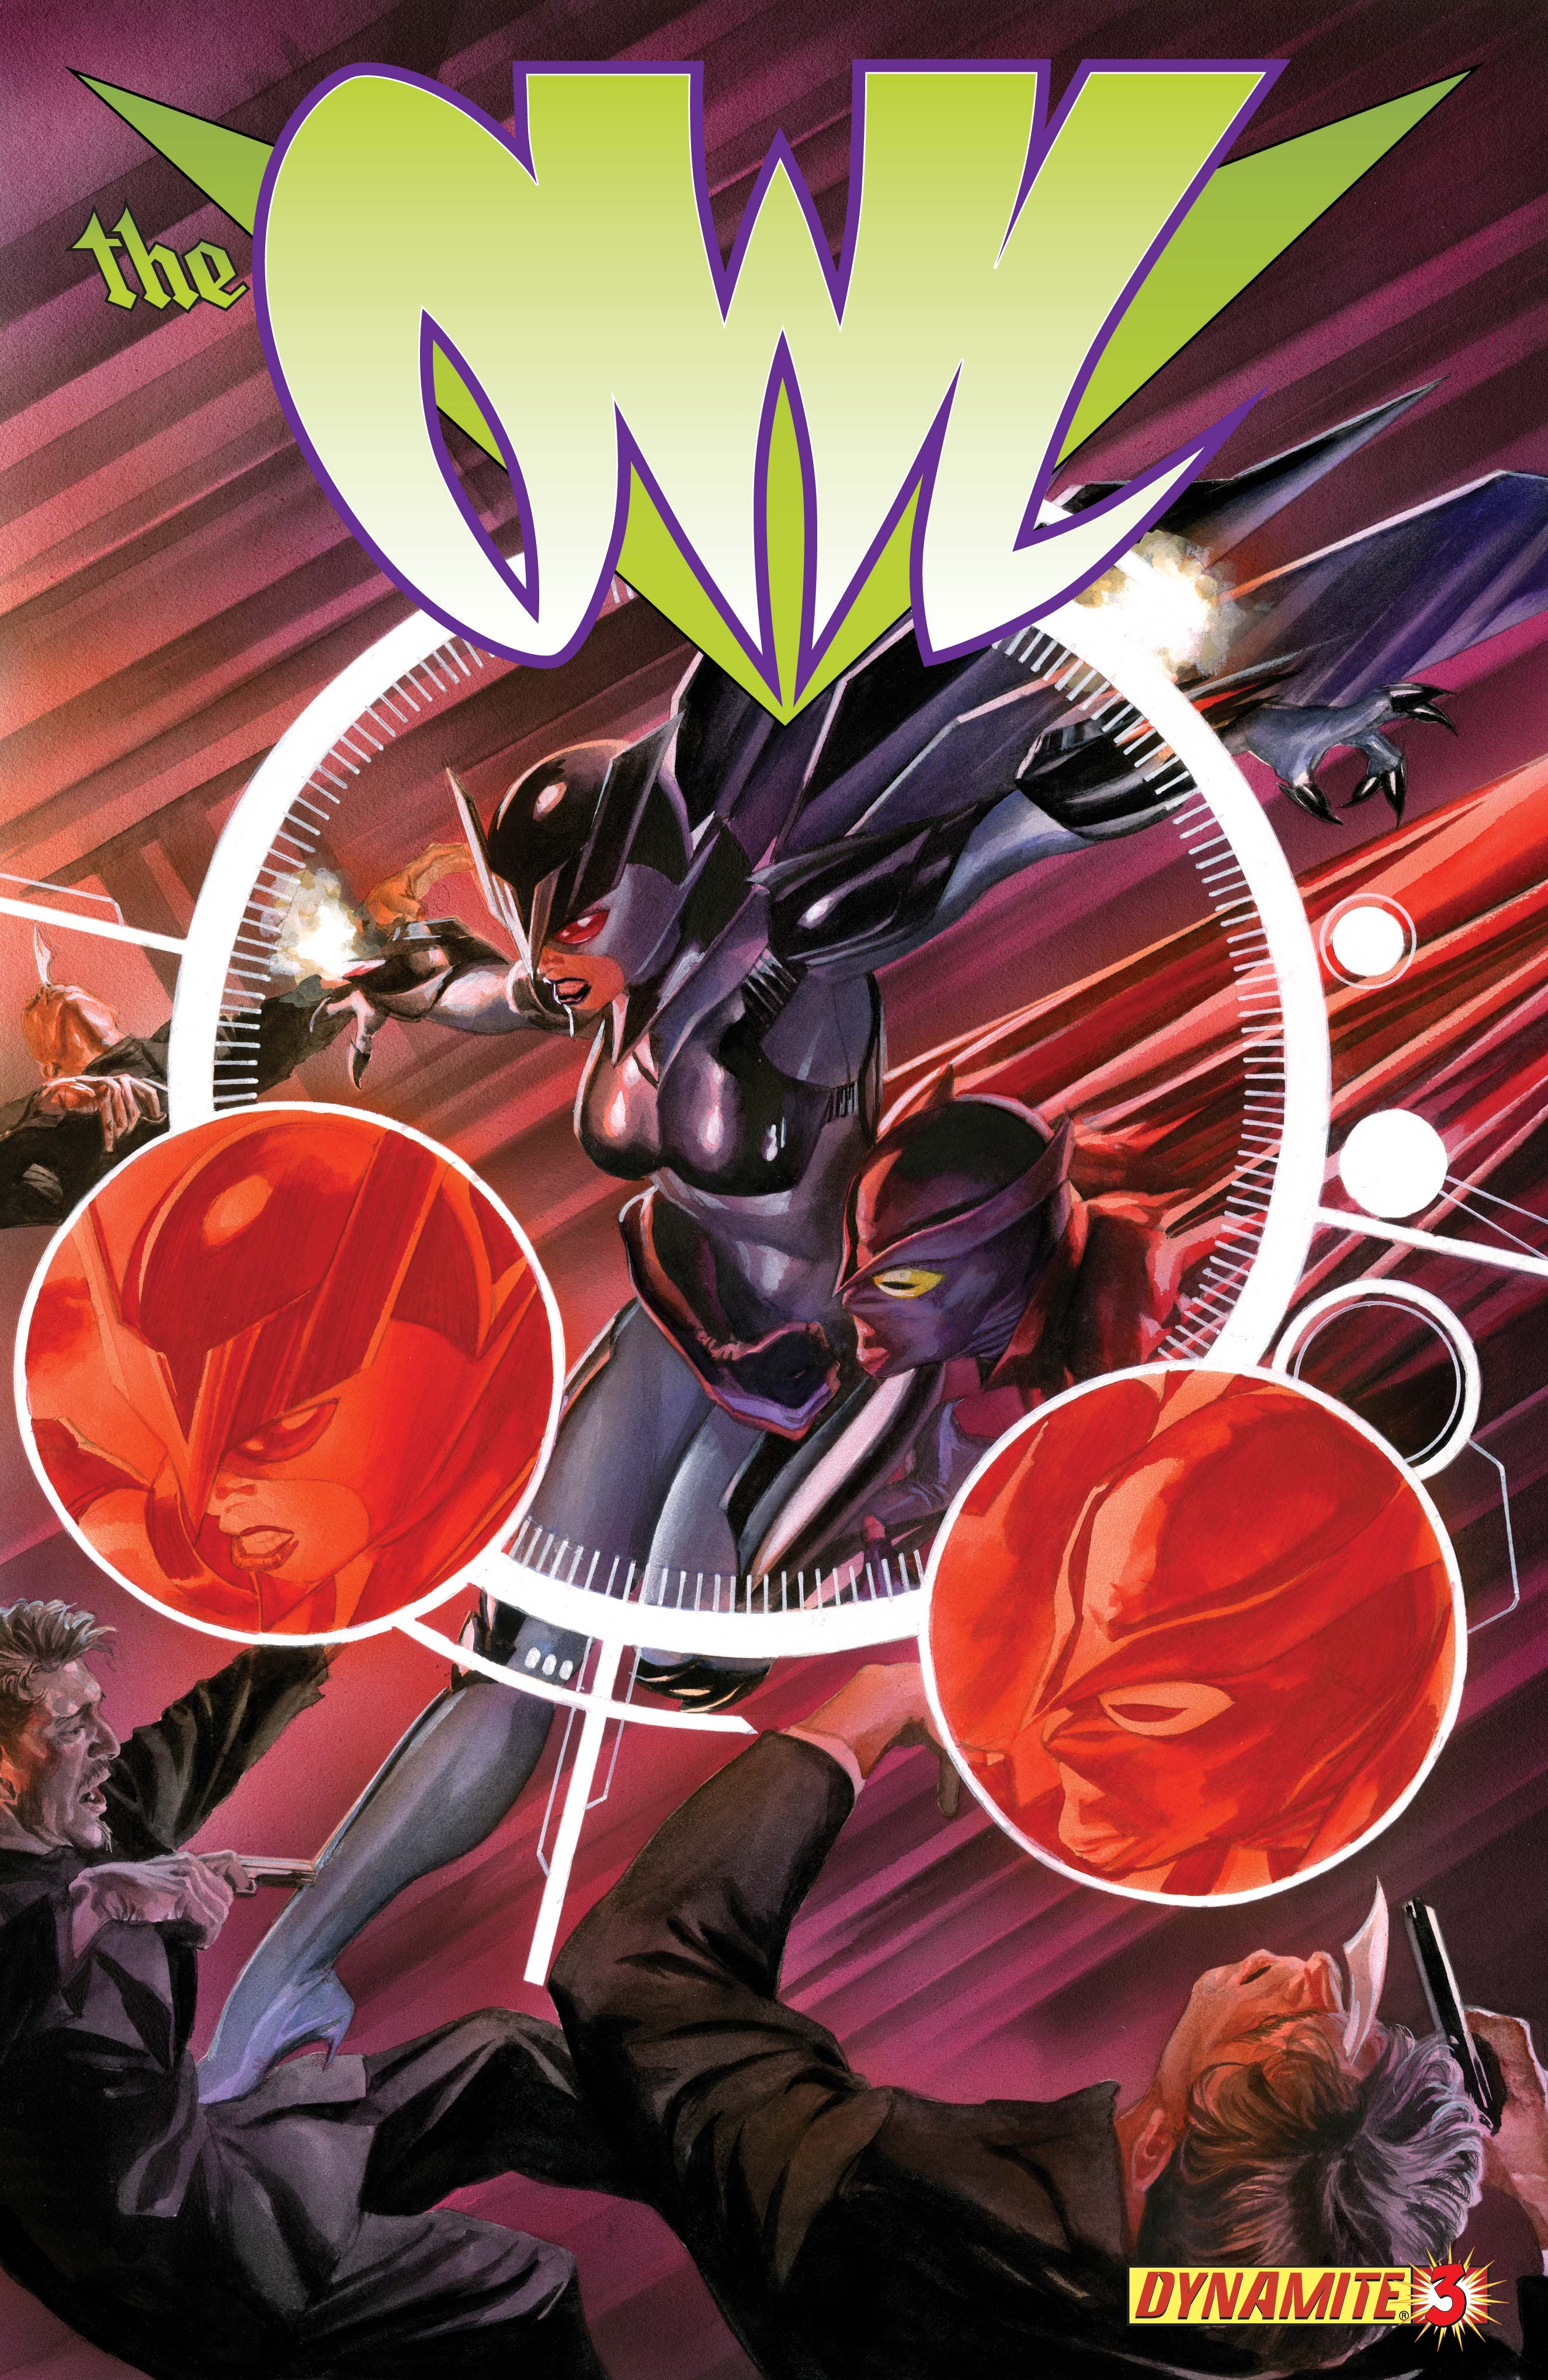 Dynamite® The Owl #3 (Of 4)